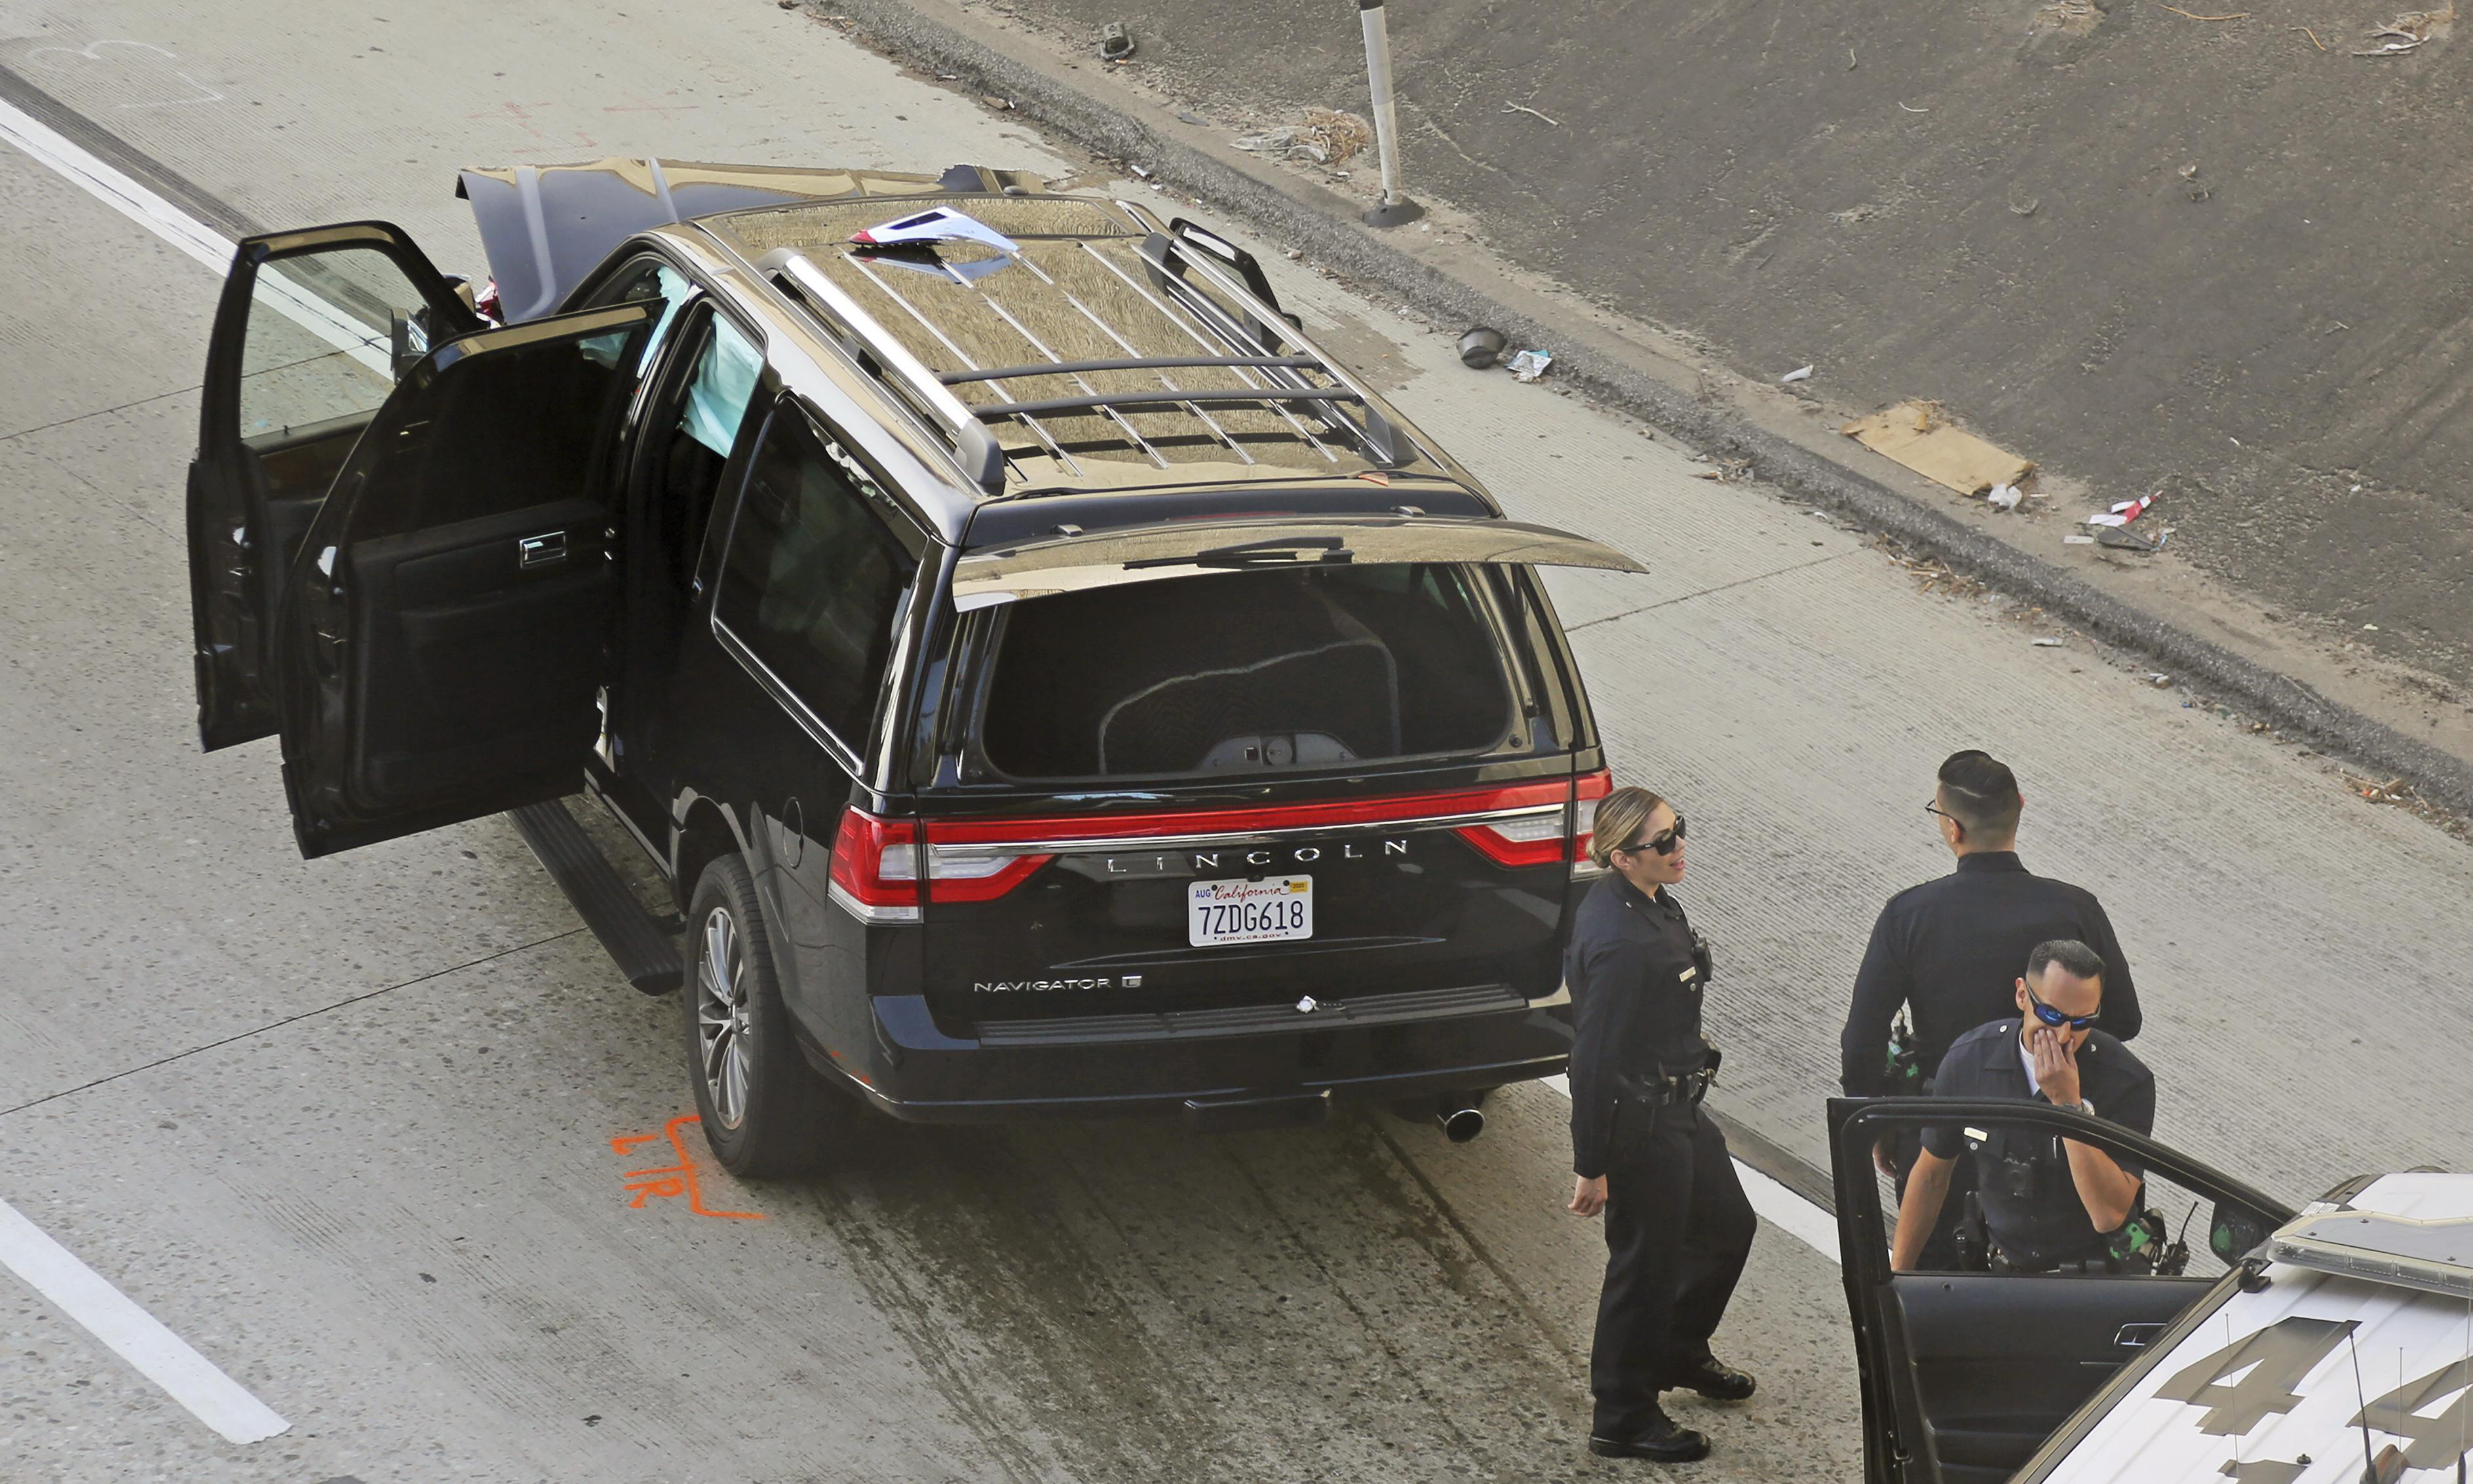 'Bring back the deceased person': police chase down stolen hearse in Los Angeles